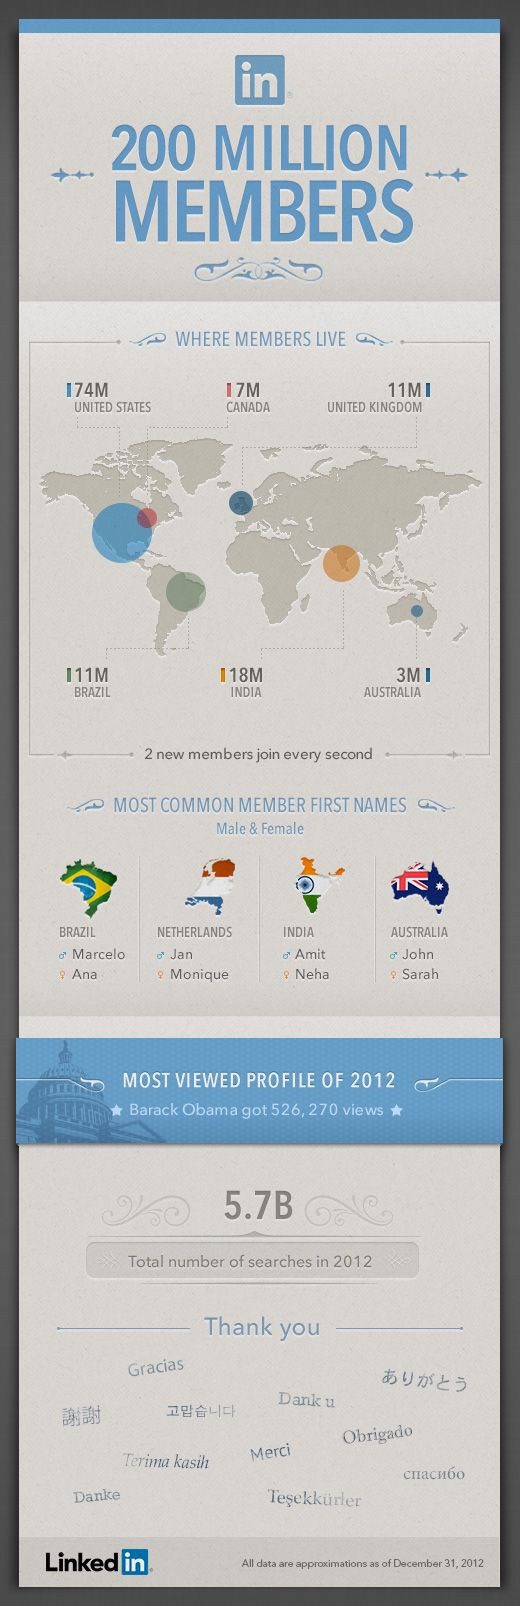 #LinkedIn reaches 200 Million Members! #infographic